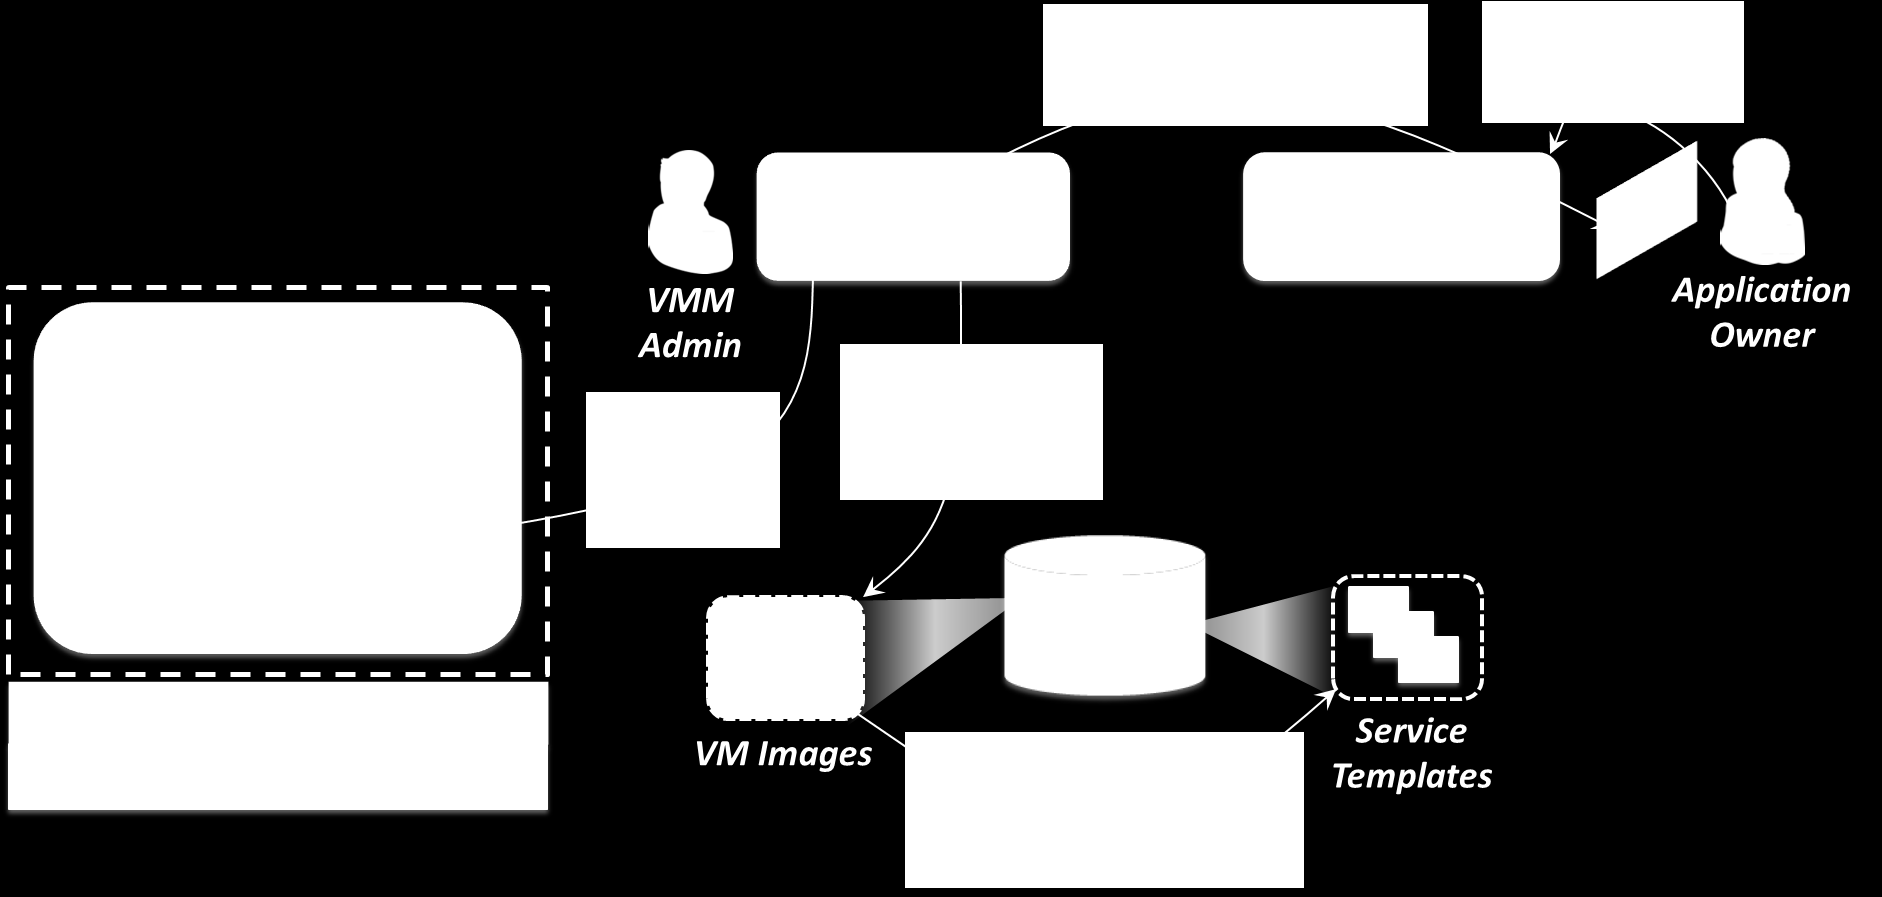 Figure 7: When a VMM administrator updates a VM image, that change can be propagated automatically to all applications that use the VM image.